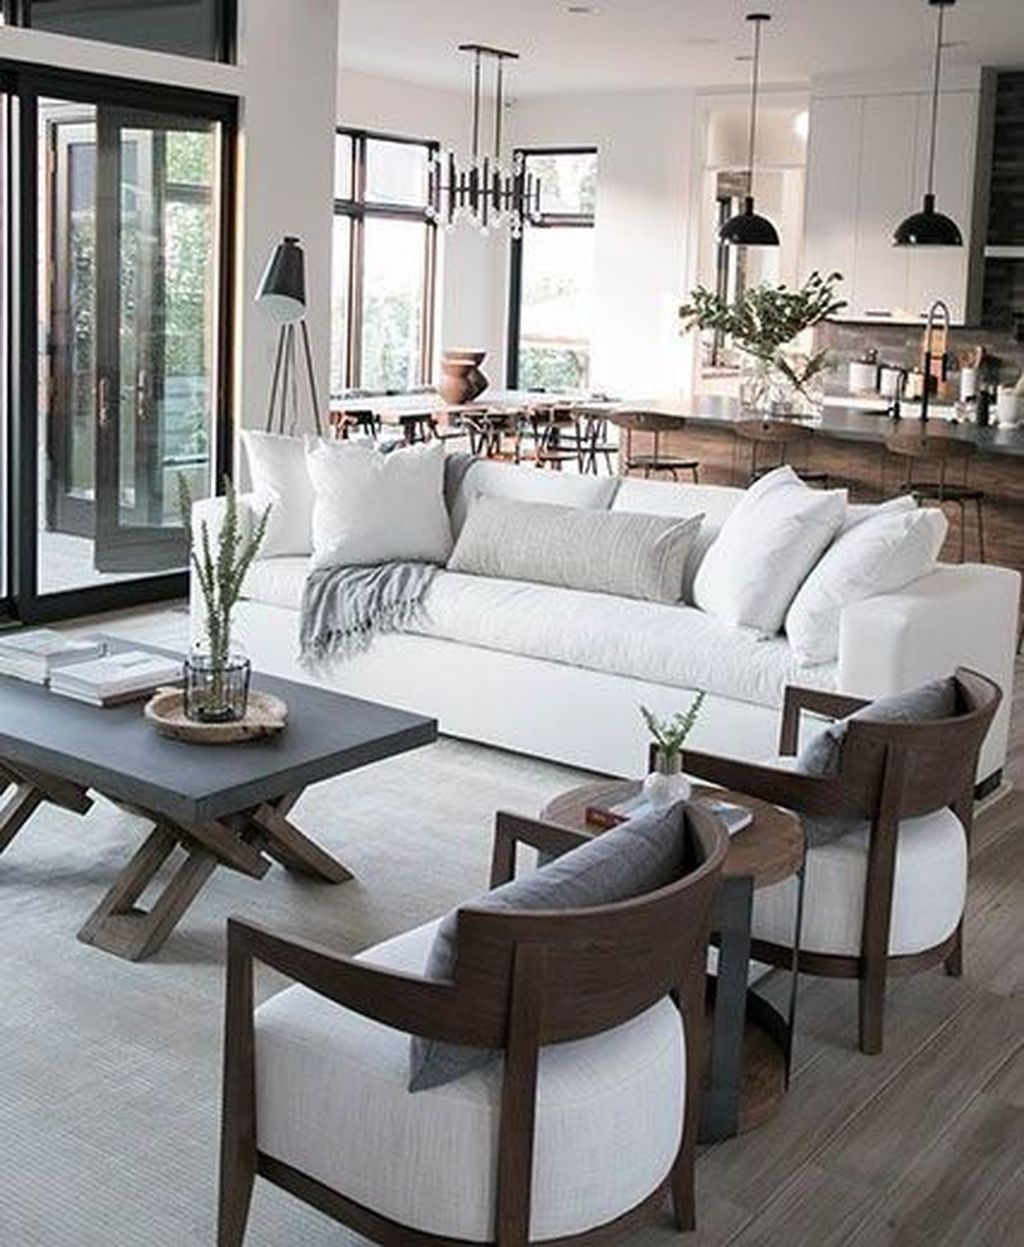 Open Plan Living Room Small Living Room Design Open Living Room Open Concept Living Room In 2020 Open Plan Living Room Open Living Room Farm House Living Room #open #floor #living #room